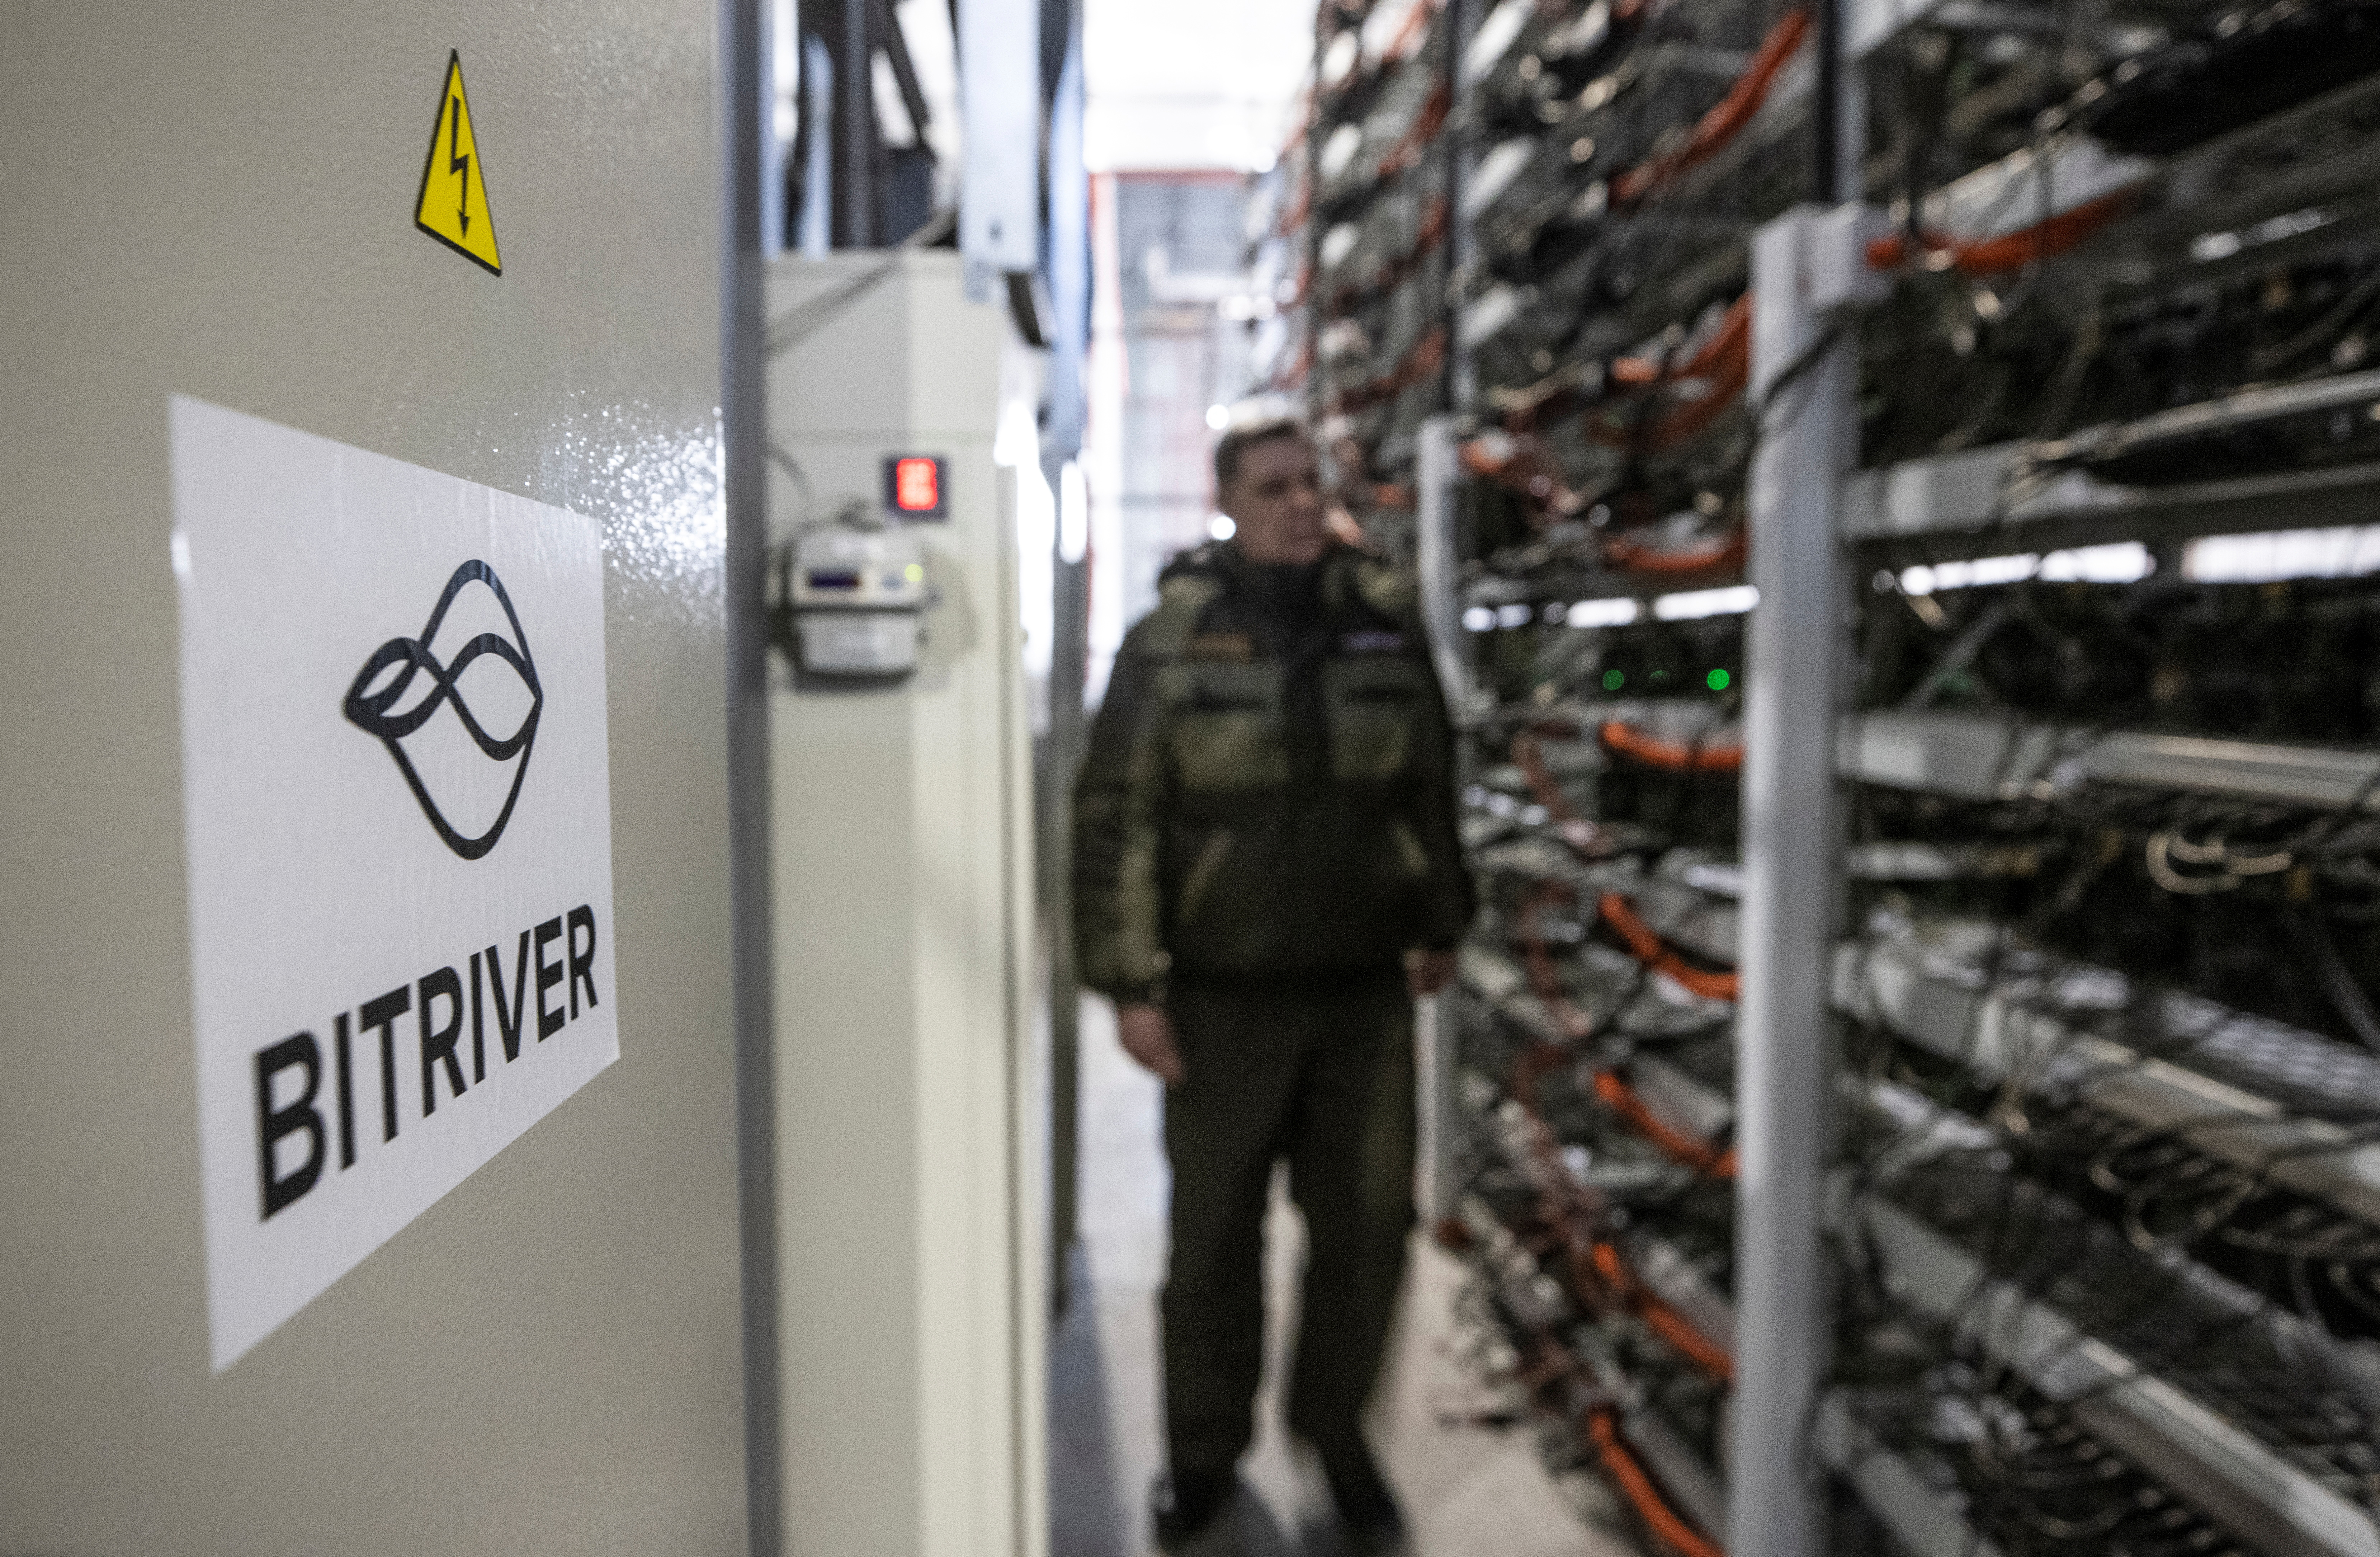 A view shows the data centre of BitRiver company providing services for cryptocurrency mining in the city of Bratsk in Irkutsk Region, Russia March 2, 2021. BitRiver offers hosting services and turnkey solutions for cryptocurrency mining operations to institutional investors including bitcoin mining firms. Picture taken March 2, 2021. REUTERS/Maxim Shemetov